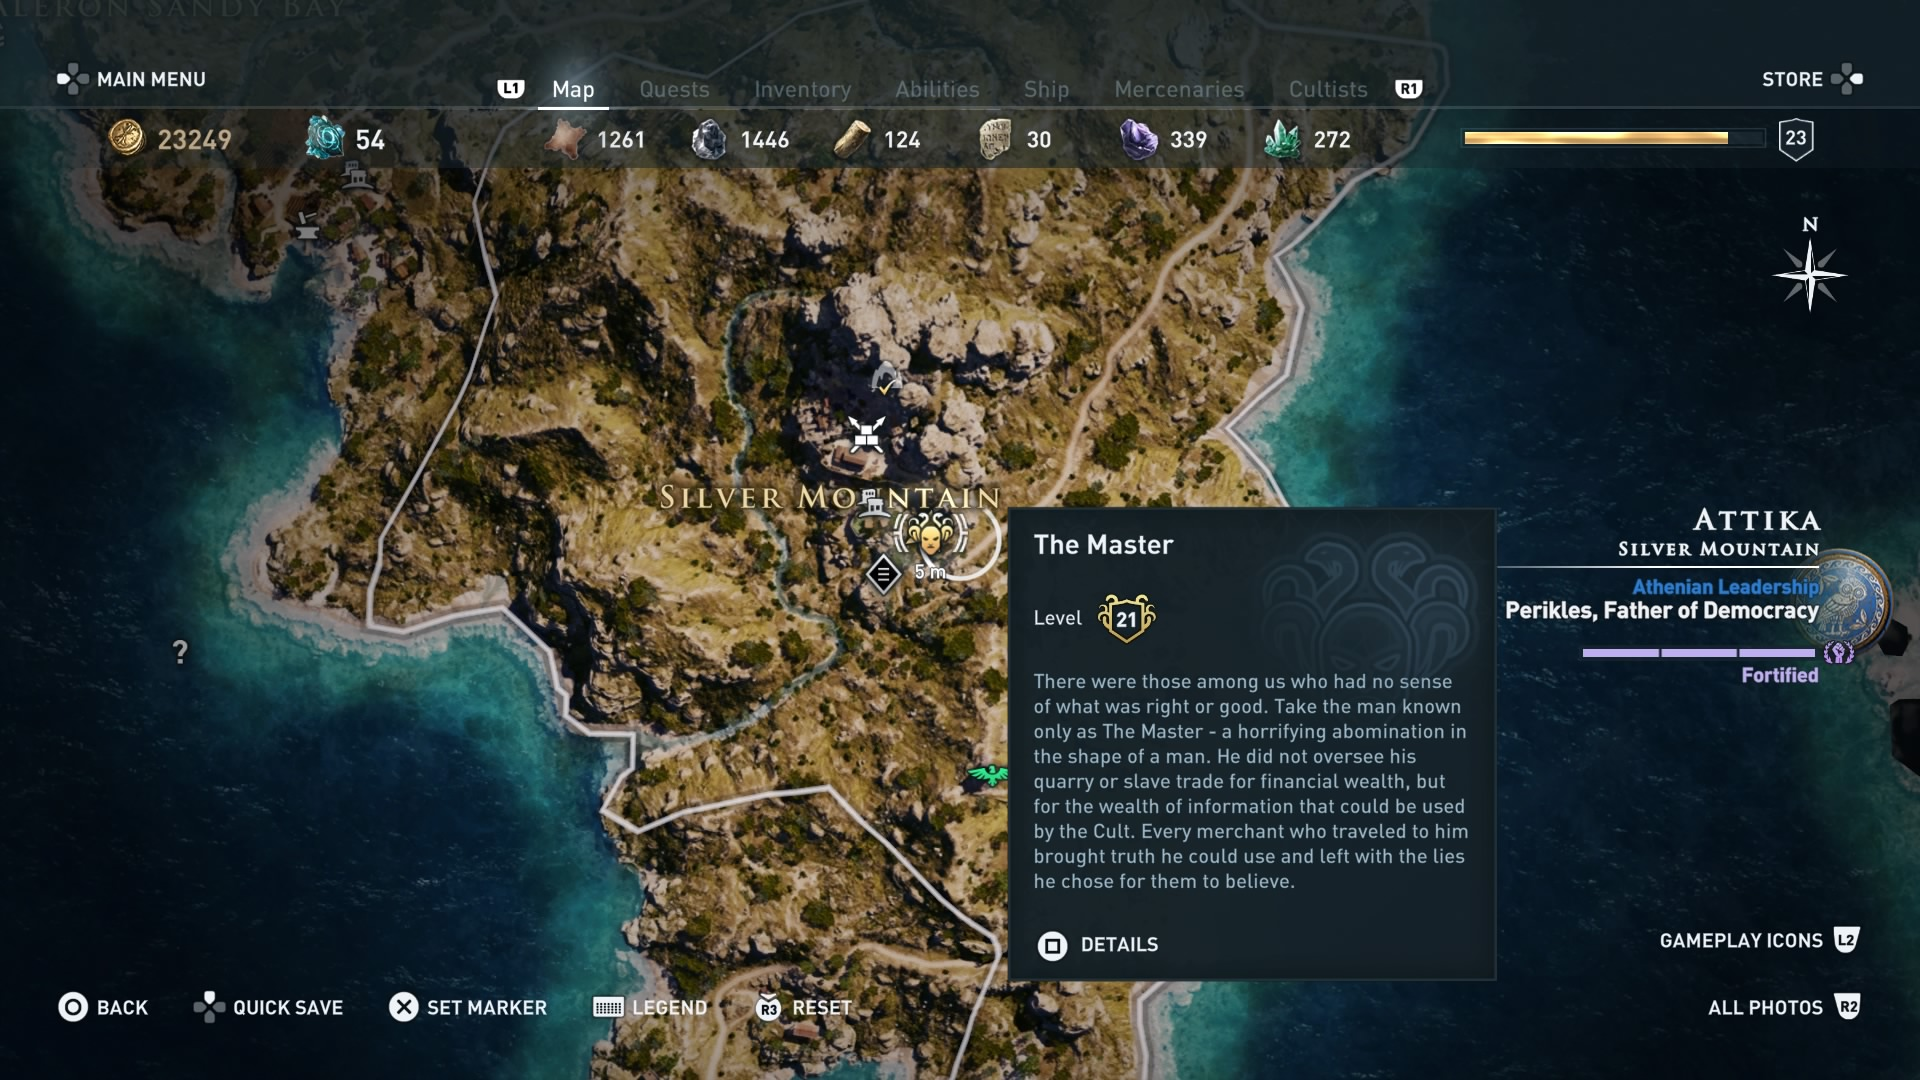 Cult of Kosmos assassin's creed Odyssey